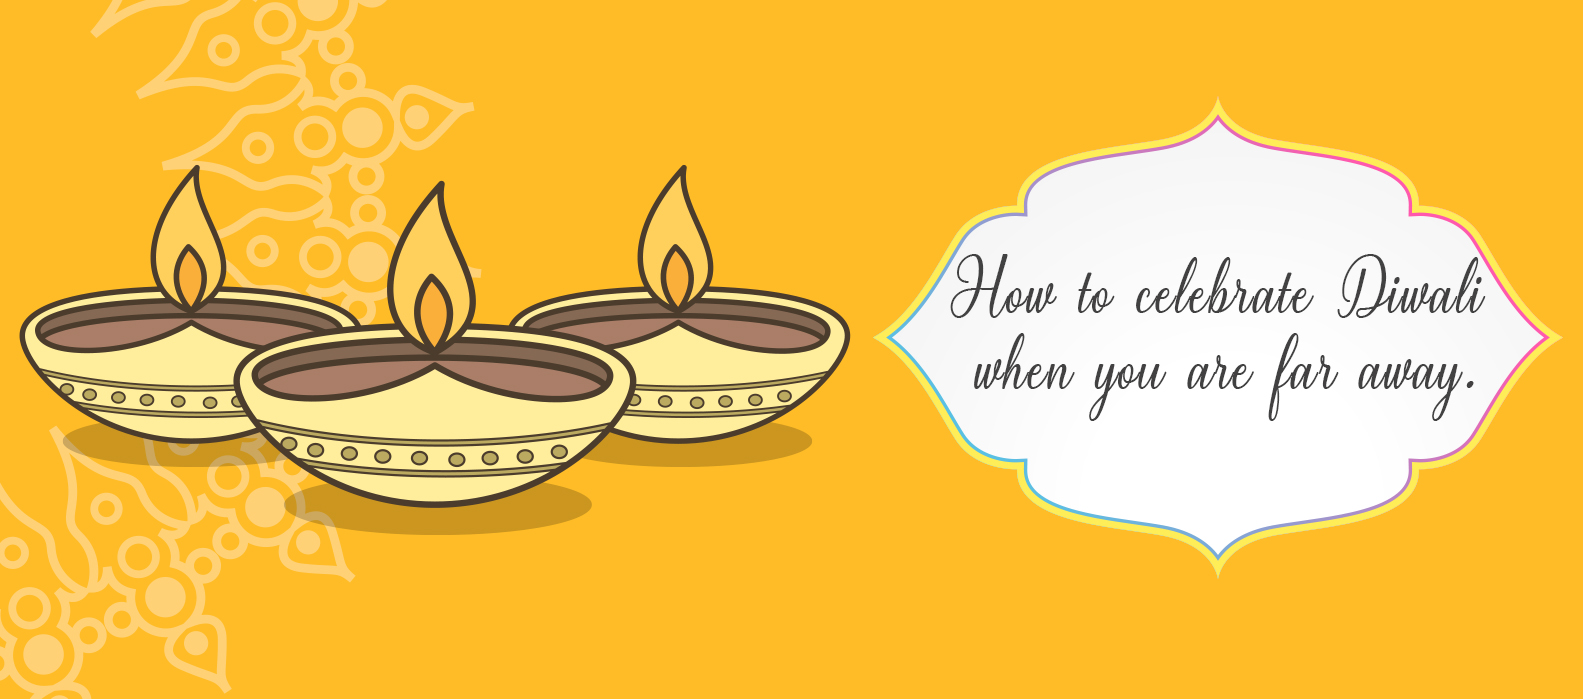 How To Celebrate Diwali When Far Away